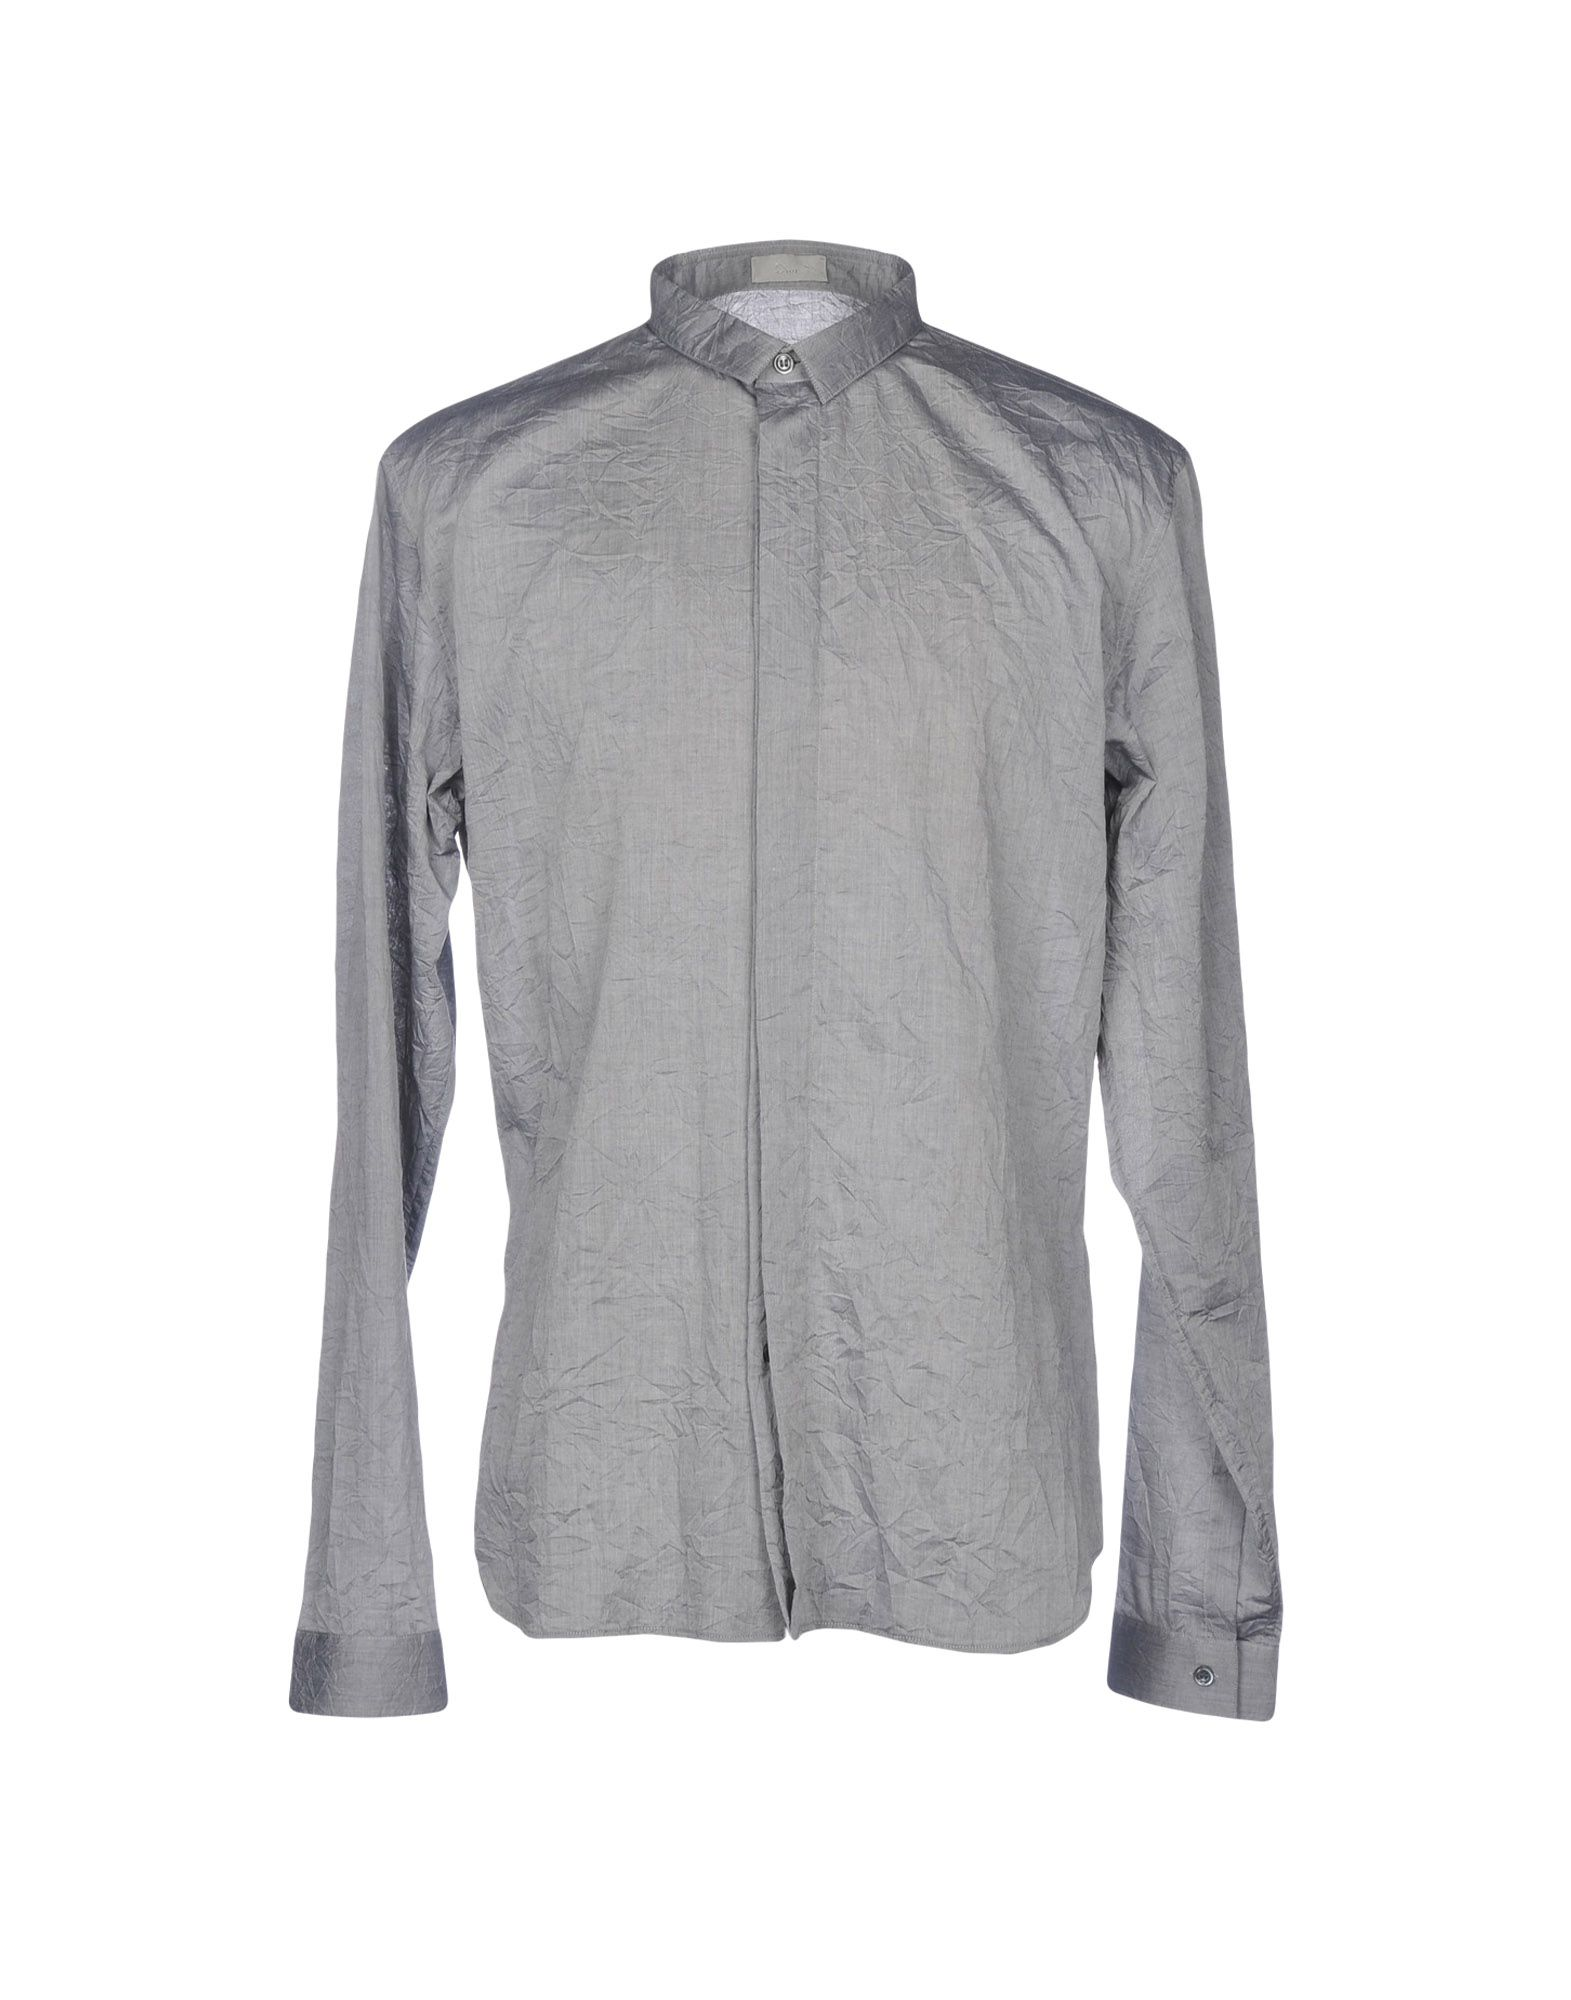 Dior Homme Shirts In Grey   ModeSens d893735ce61